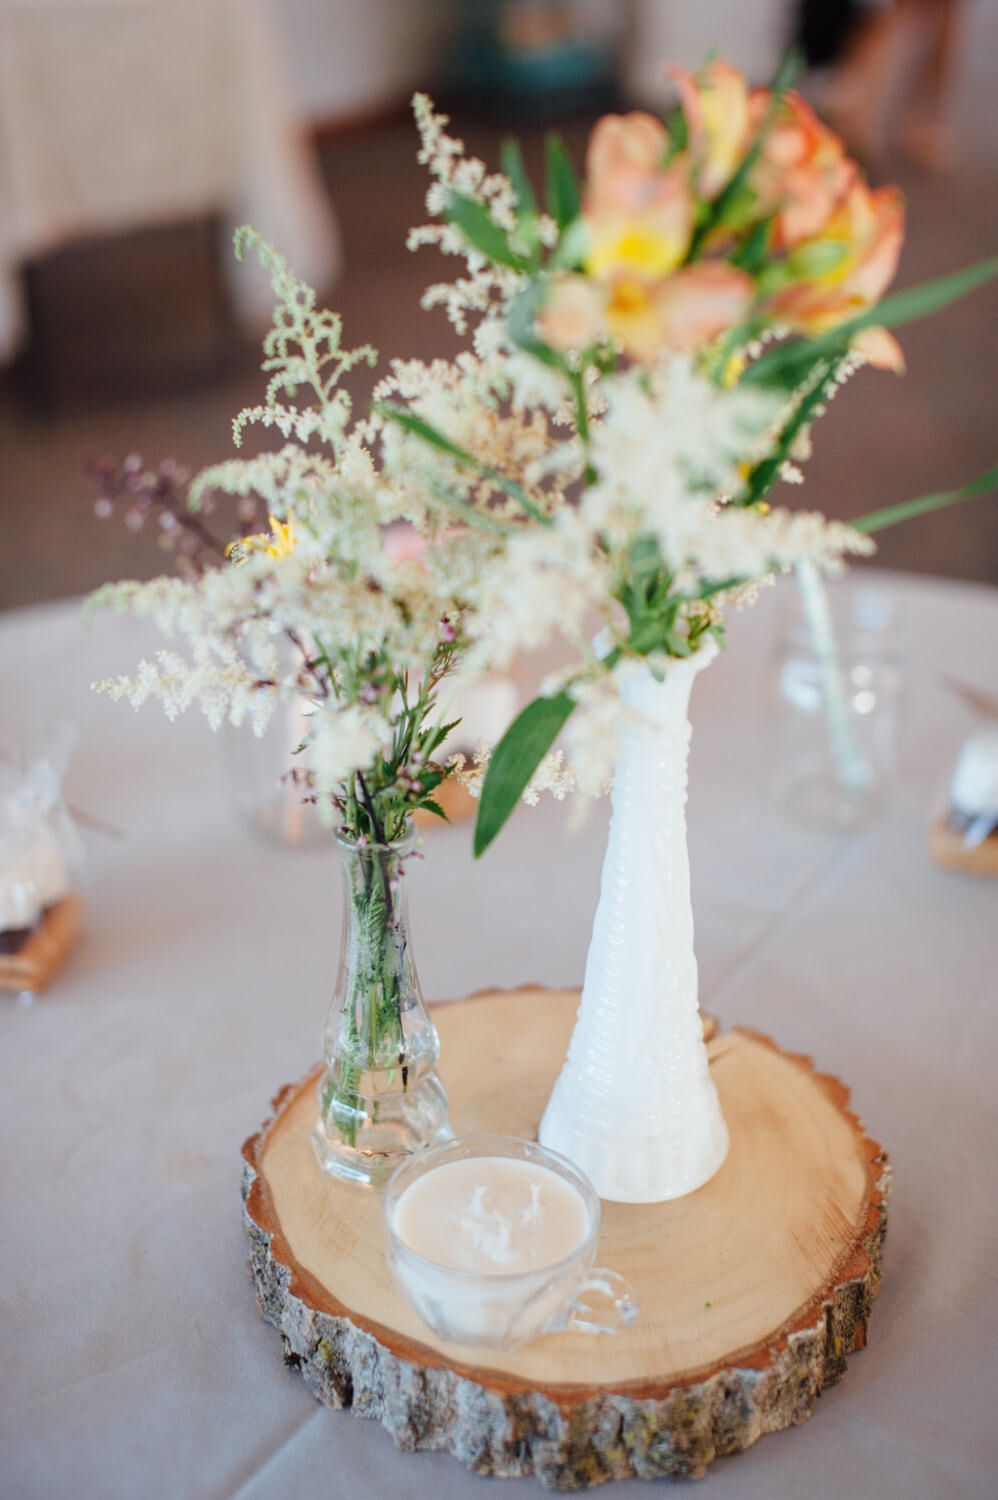 Wood Rounds Table Centerpiece Dessert Stand Tree Slice Rustic Wedding Wood Centerpieces Wedding Wood Centerpieces Rustic Wedding Centerpieces